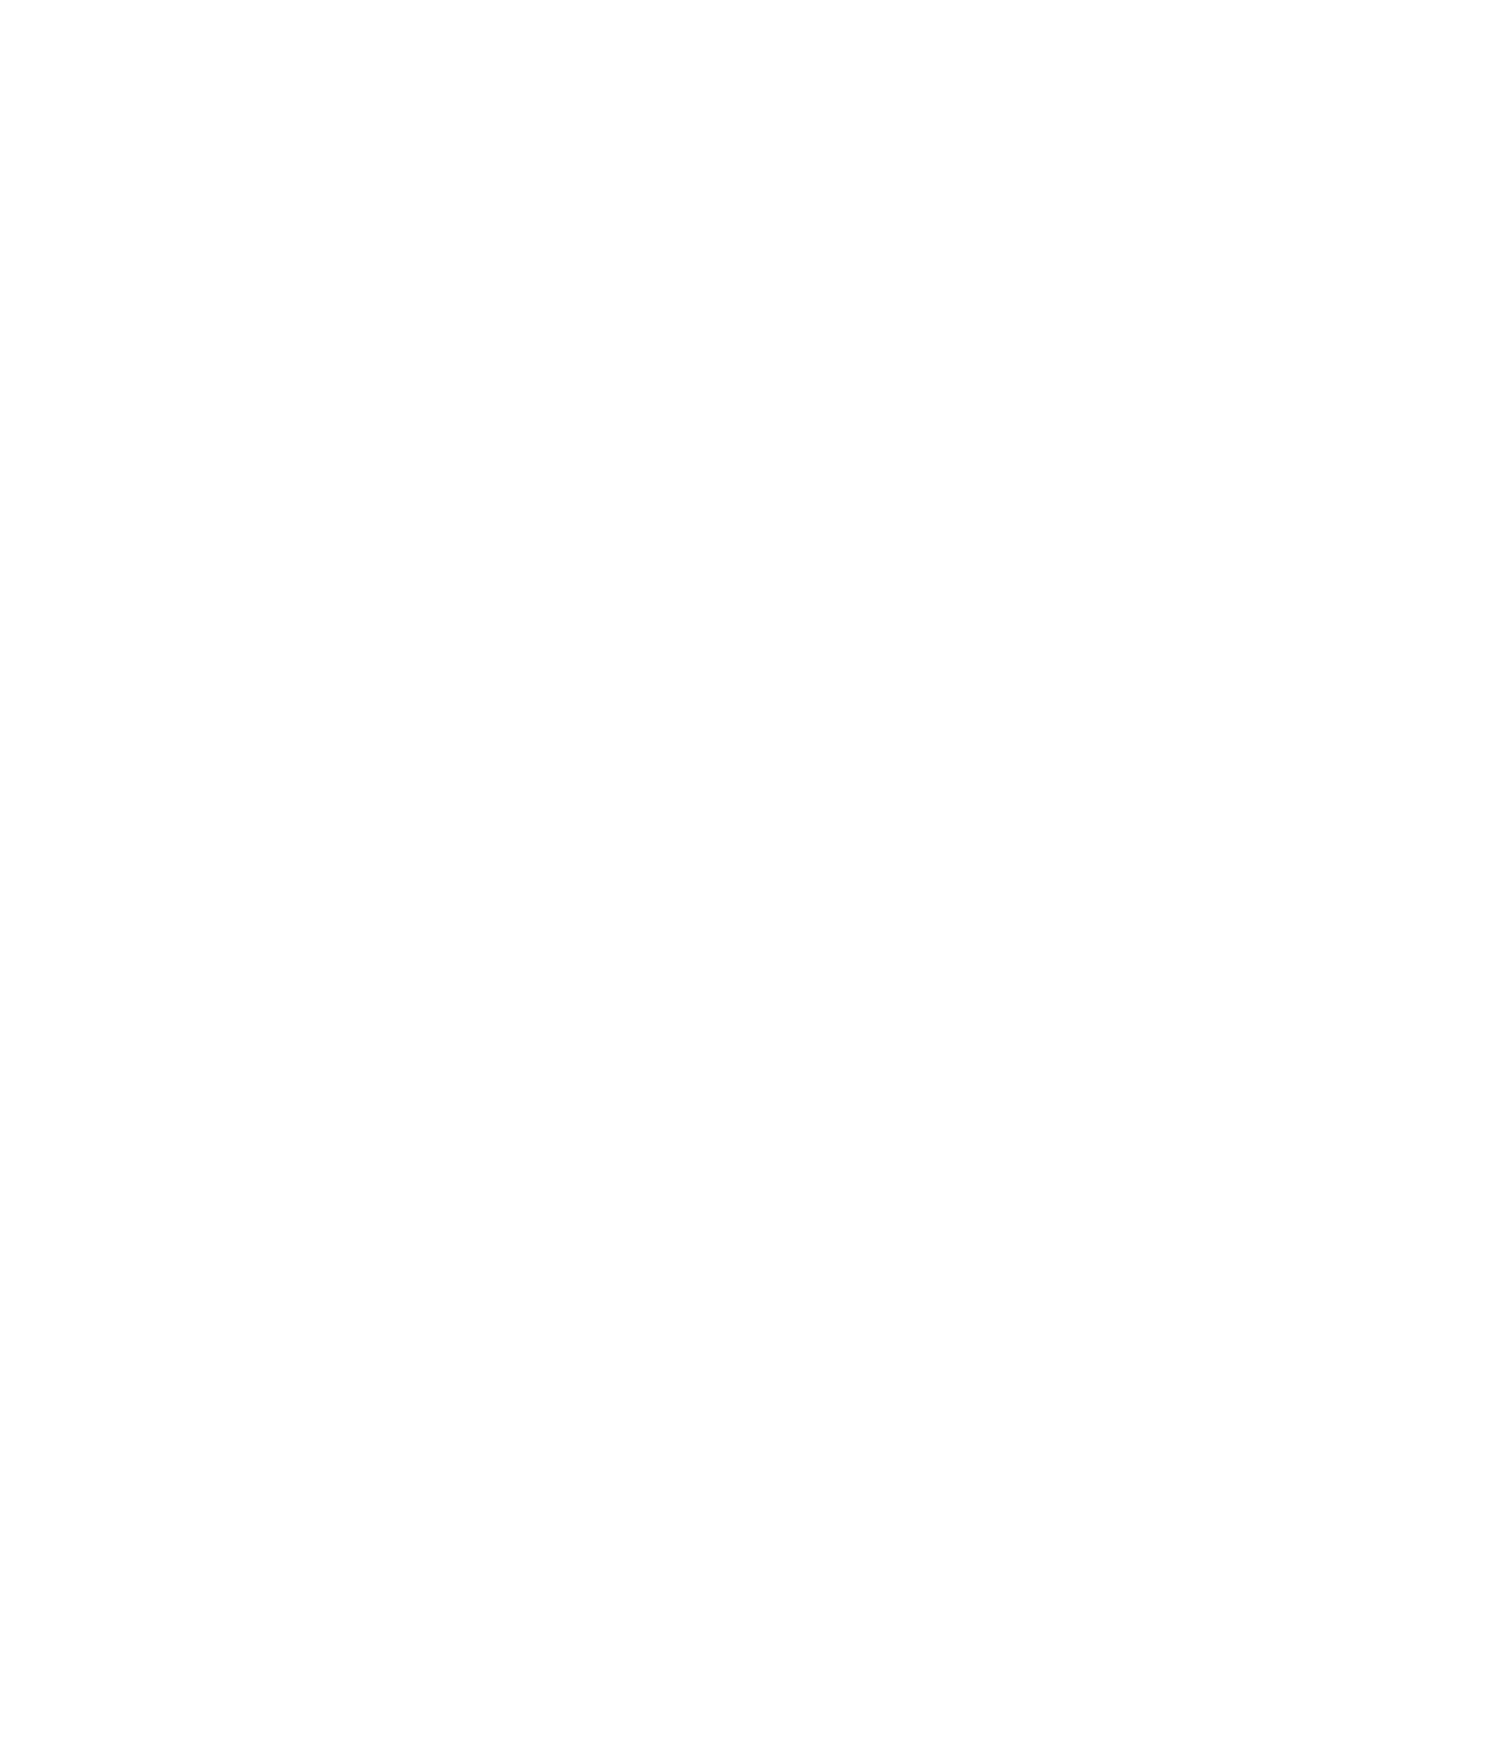 Meaney Creative